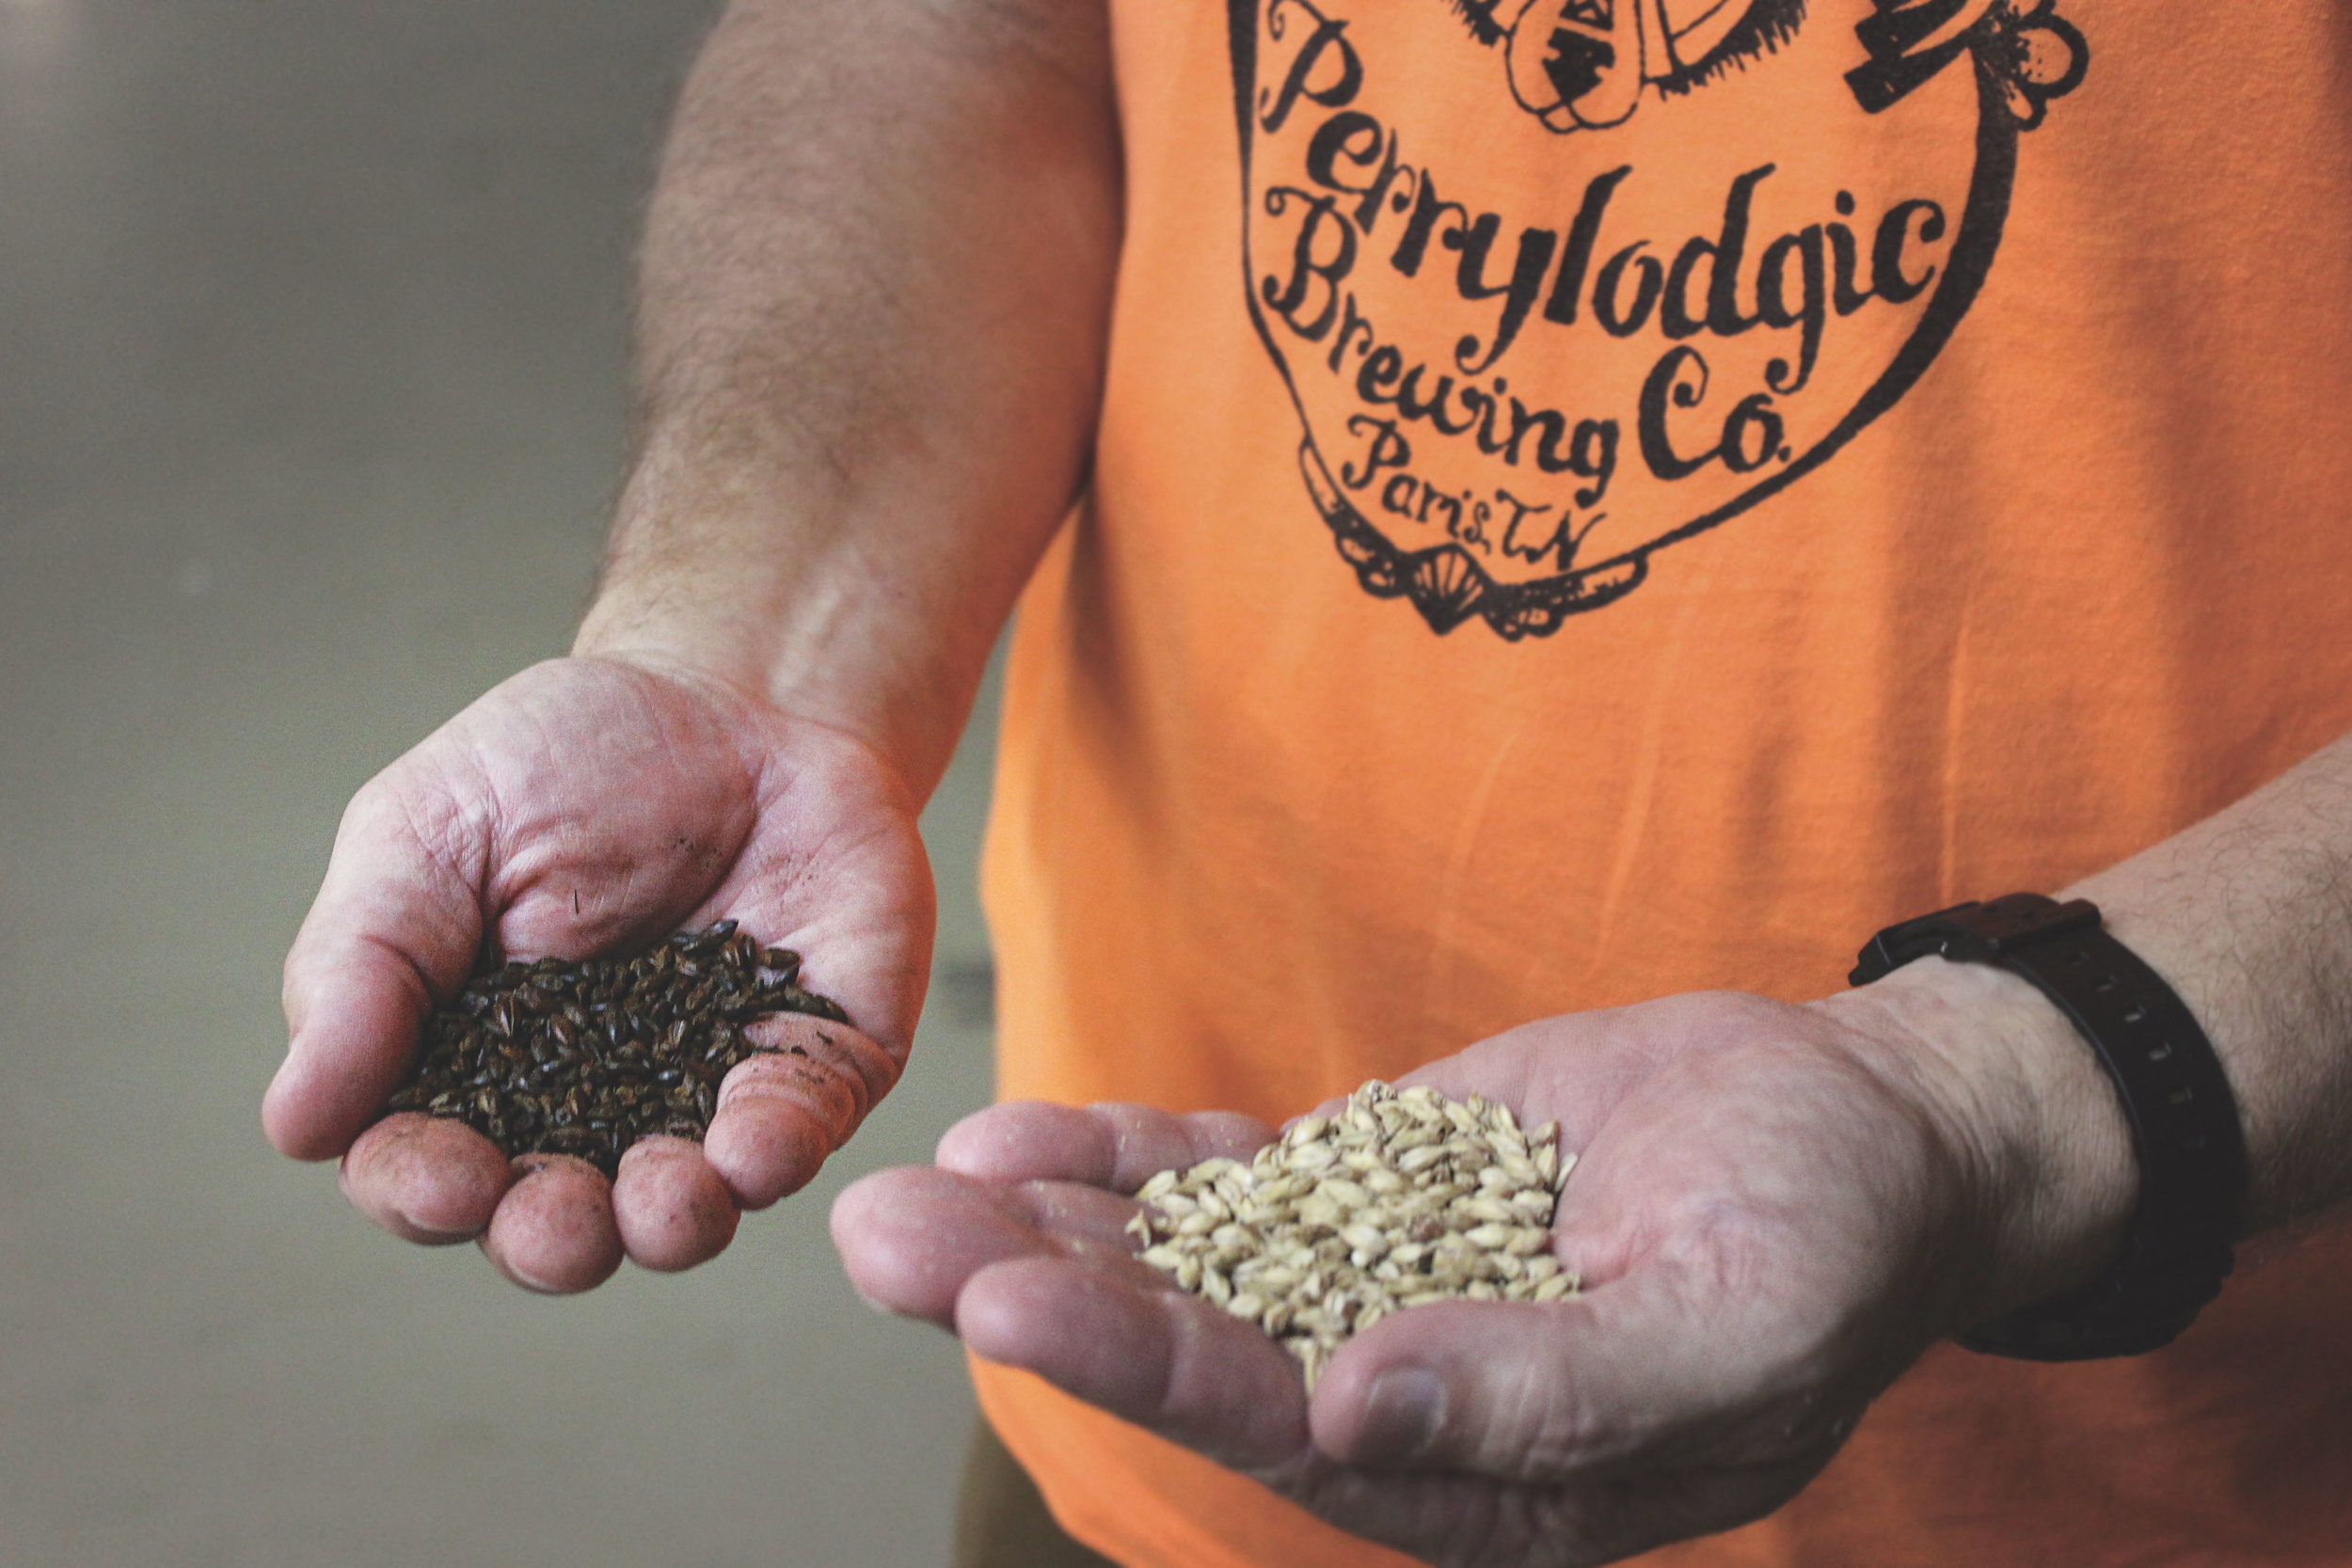 A handful of beautiful, amber hops that will be used to make one-of-a-kind beer.